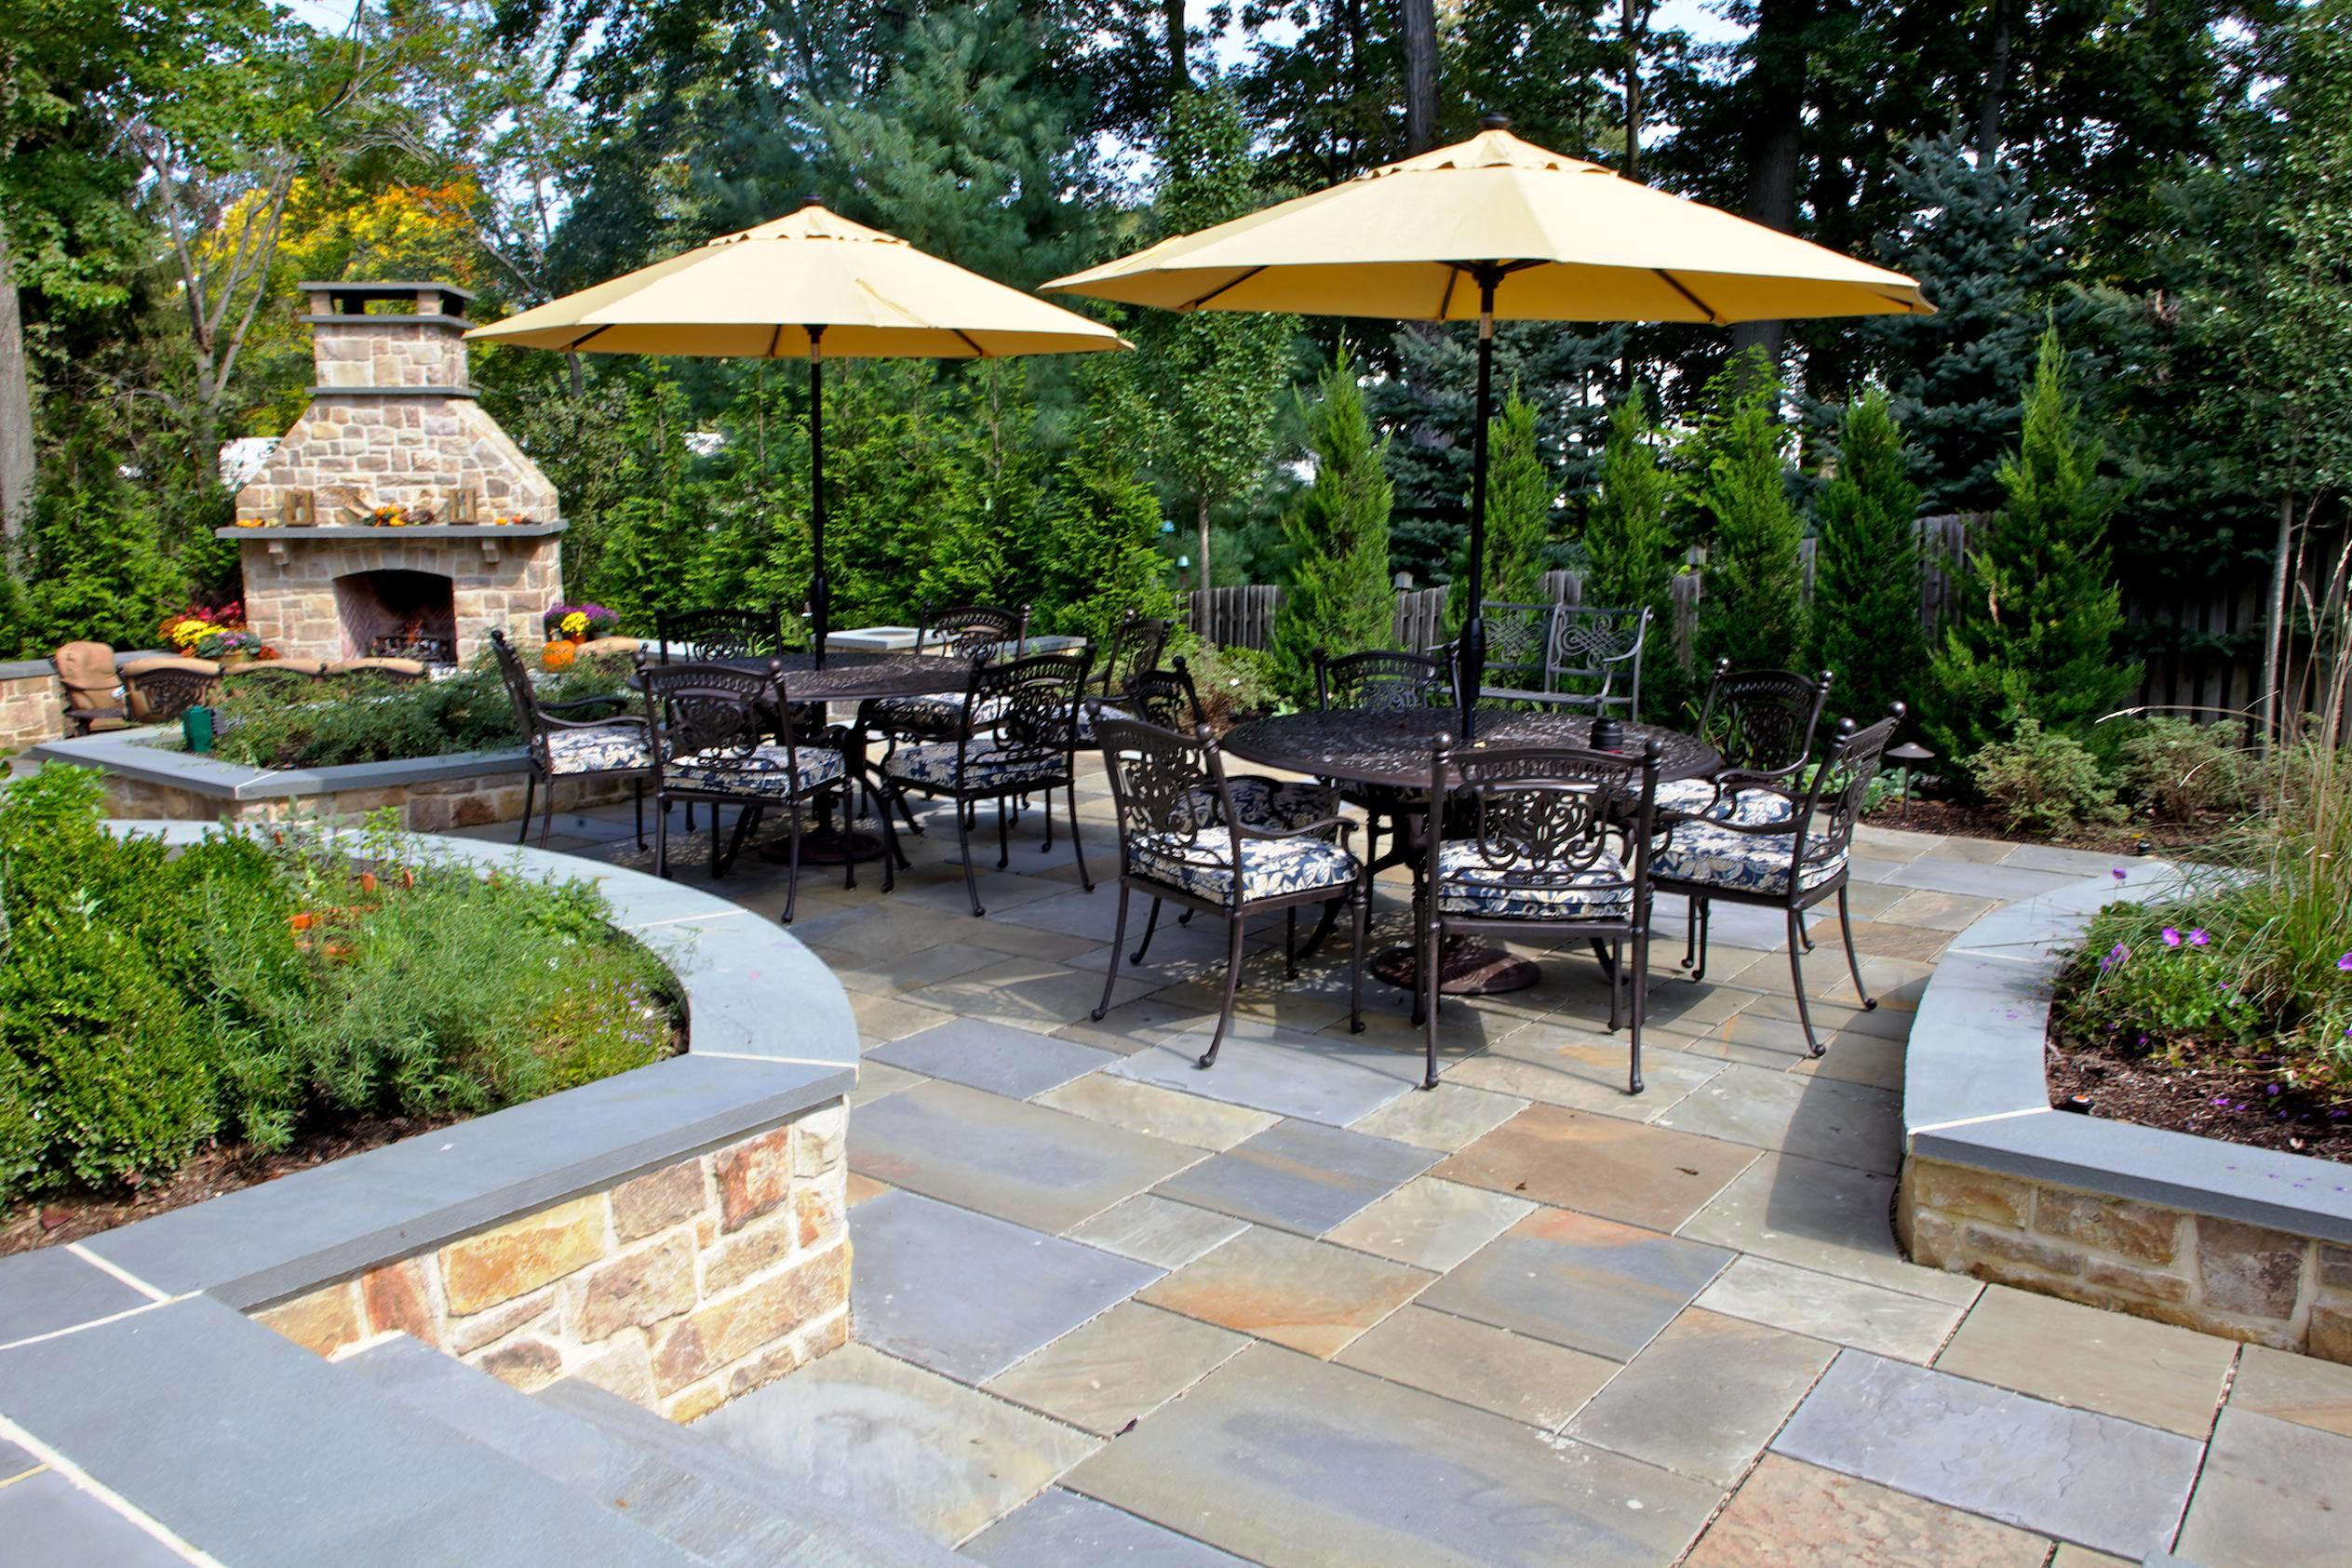 Paver Patio Ideas On A Budget : Schmidt Gallery Design ... on Small Backyard Brick Patio Ideas id=26601